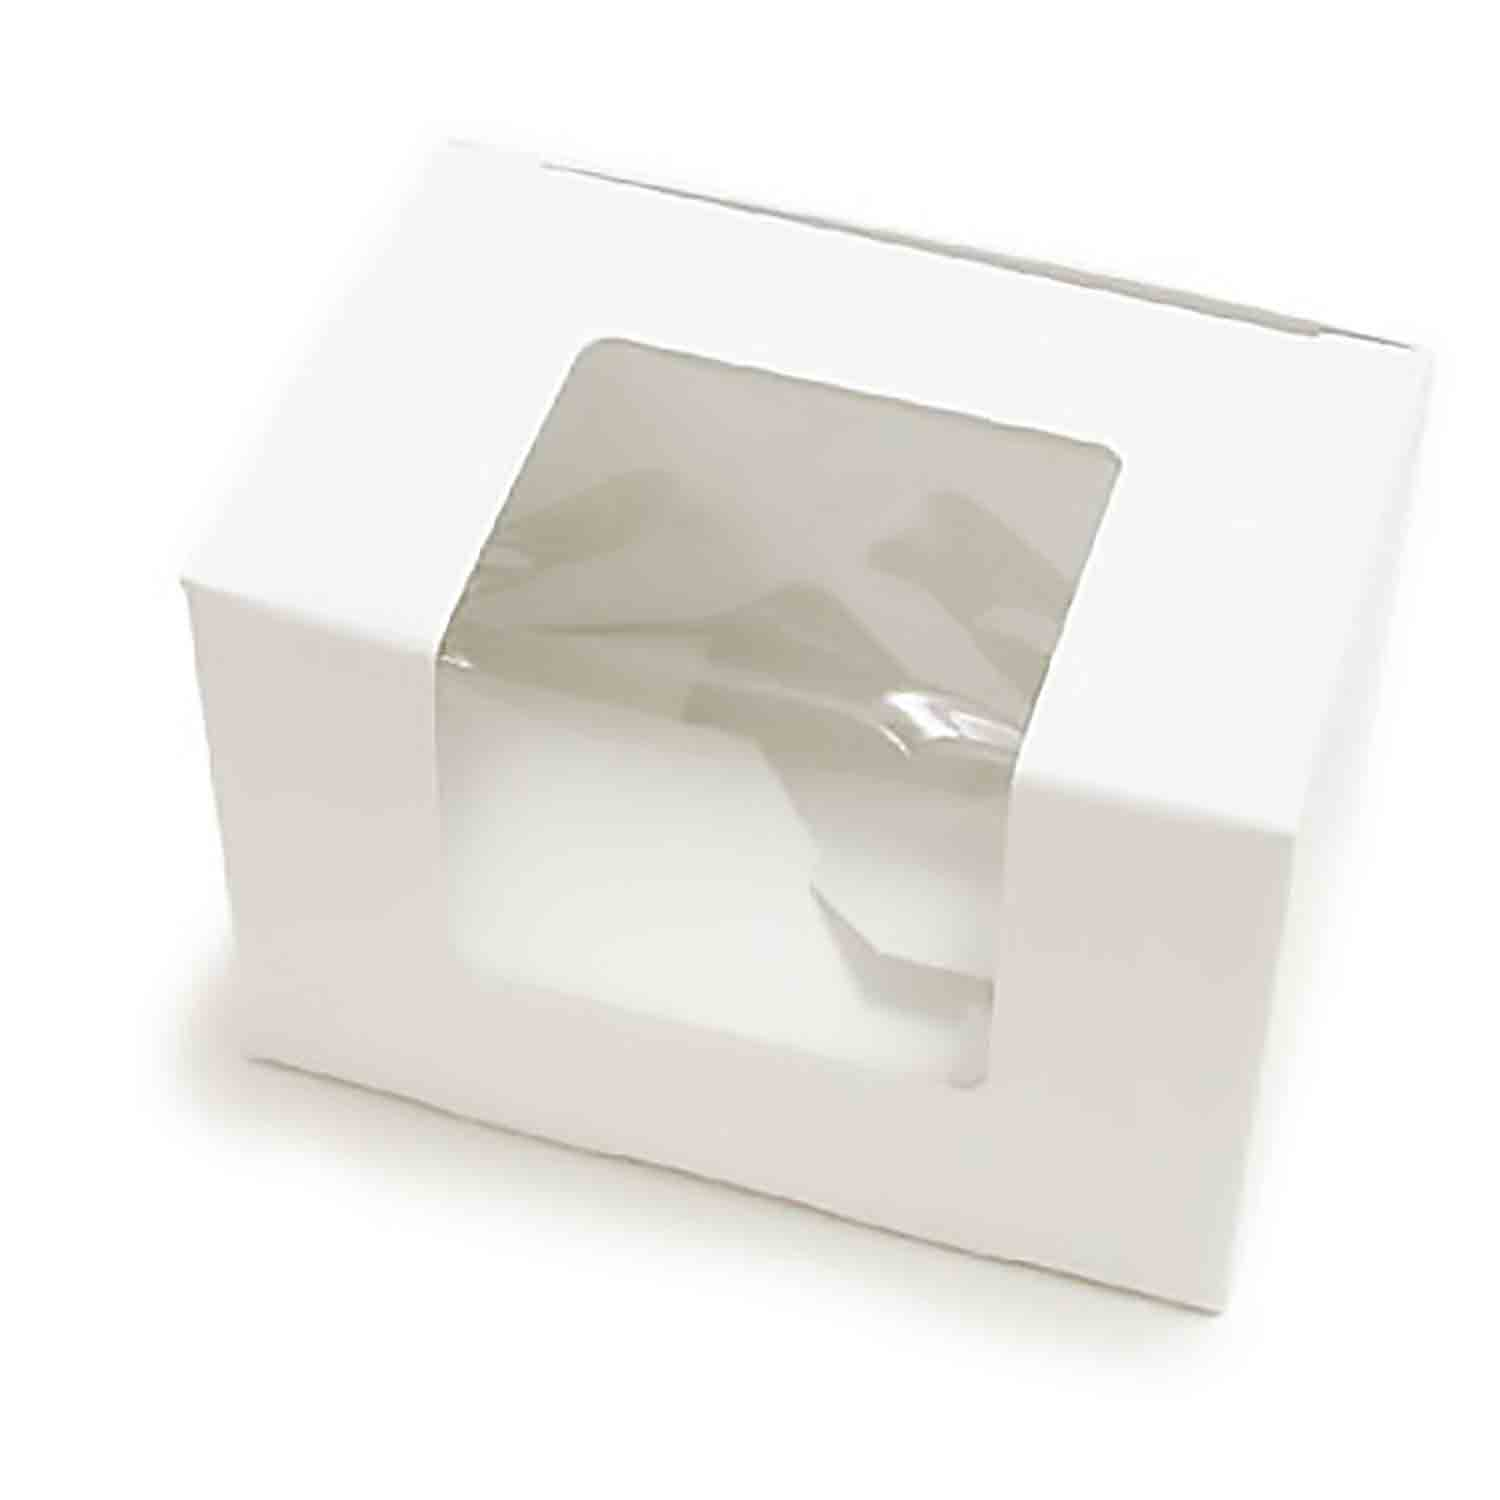 1/4 lb. White Egg Candy Box with Window